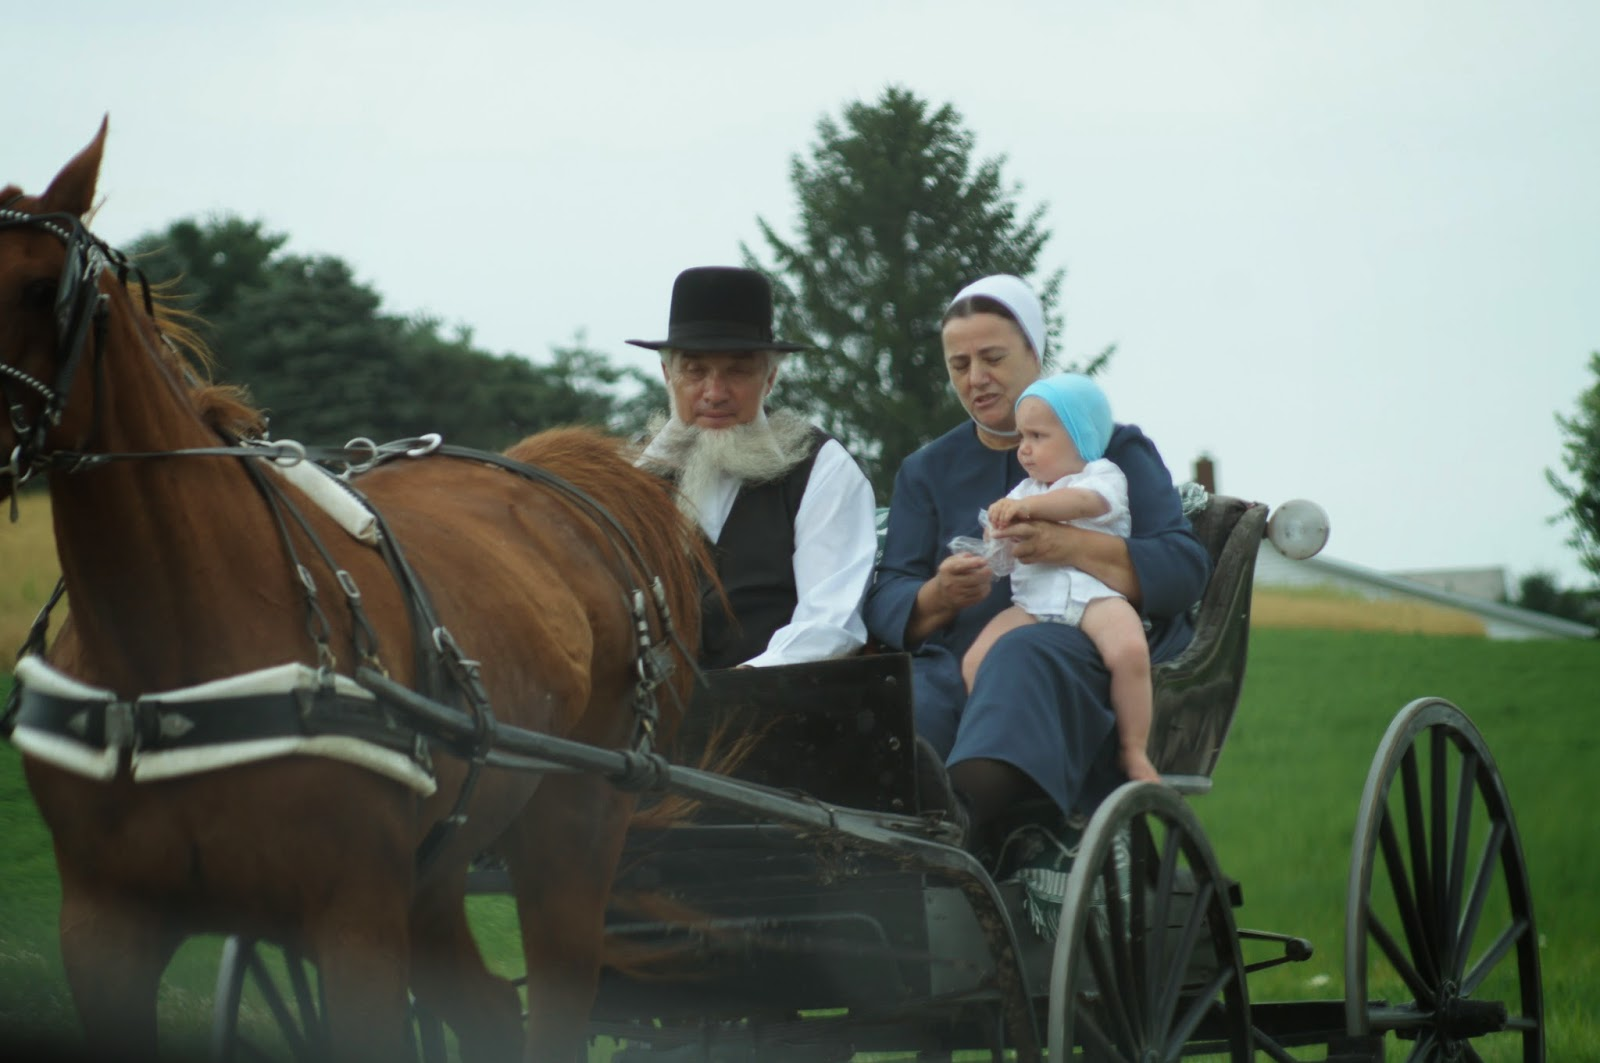 Things with wings ohio amish country for Amish country things to do